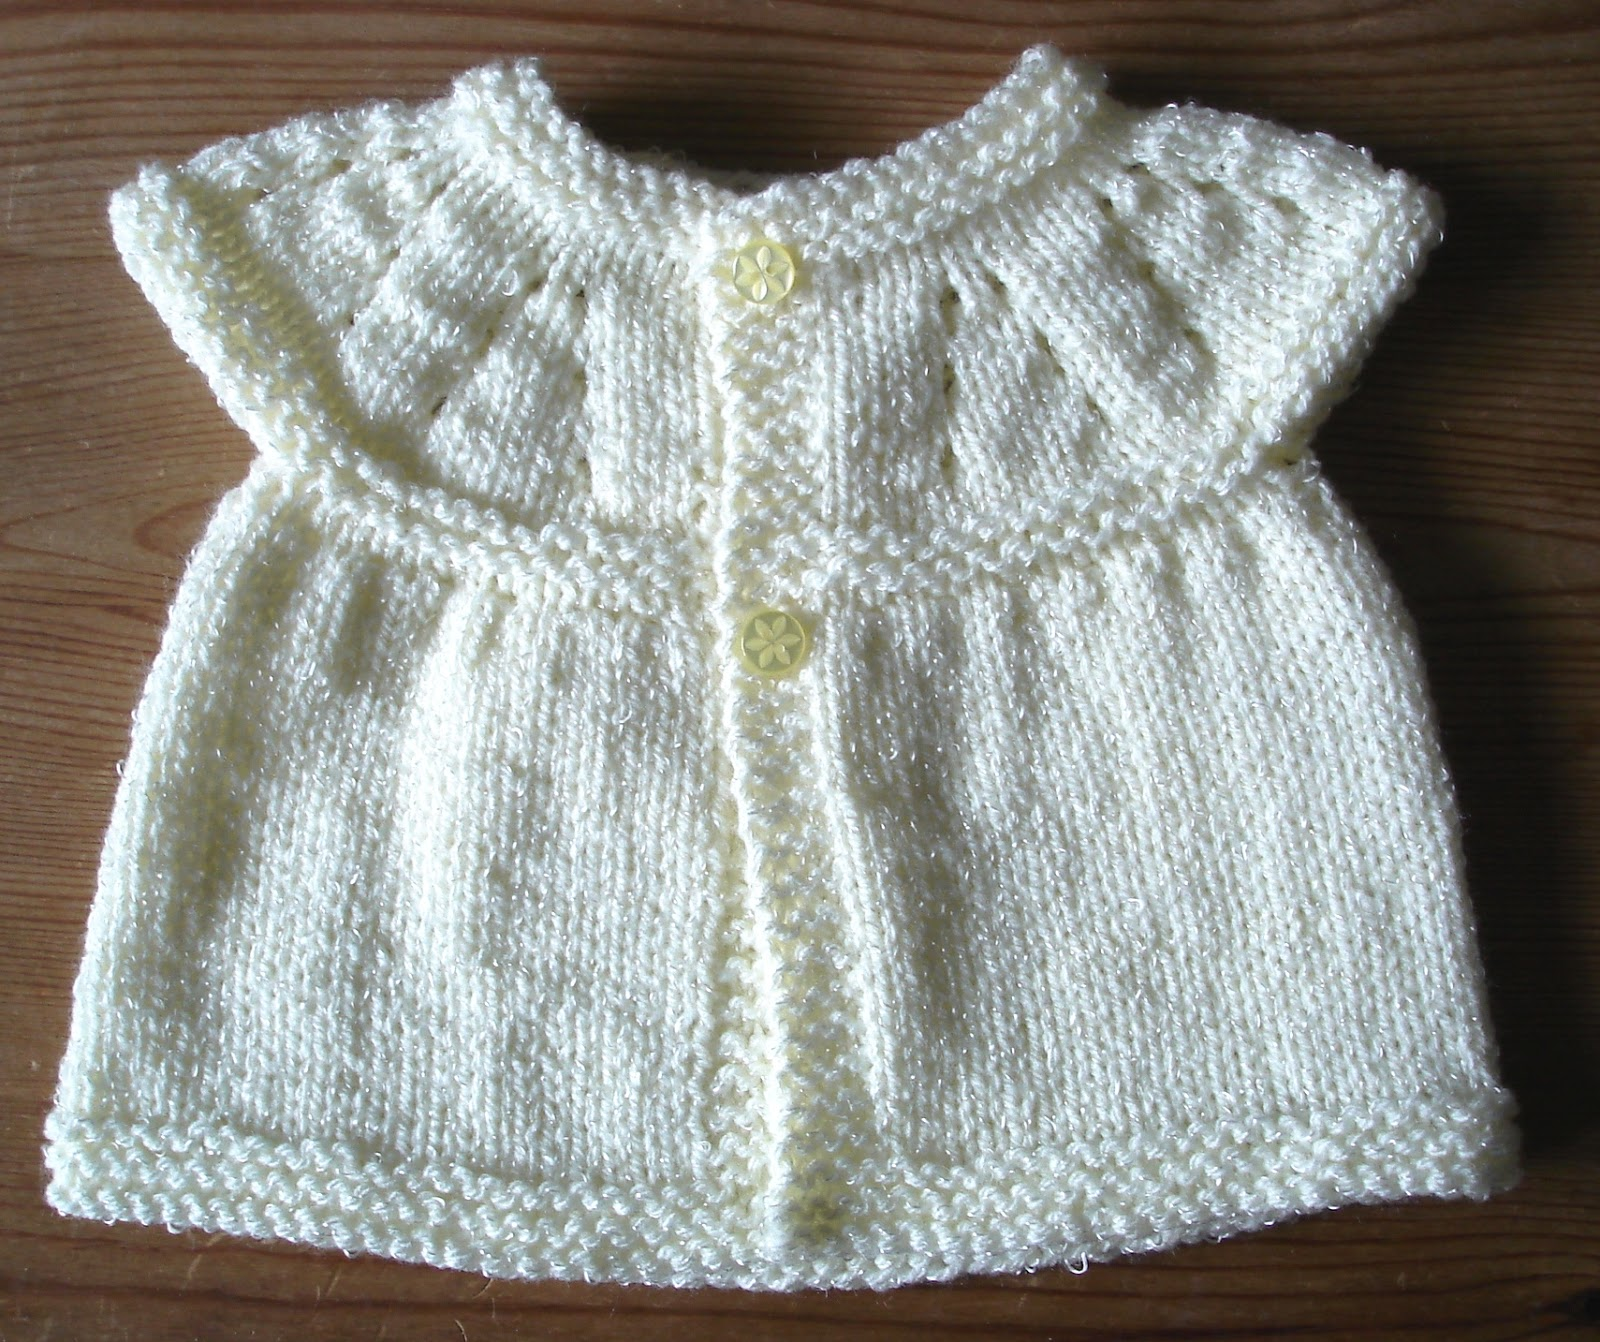 Knitting Pattern Baby All In One : mariannas lazy daisy days: All-in-one Knitted Baby Tops